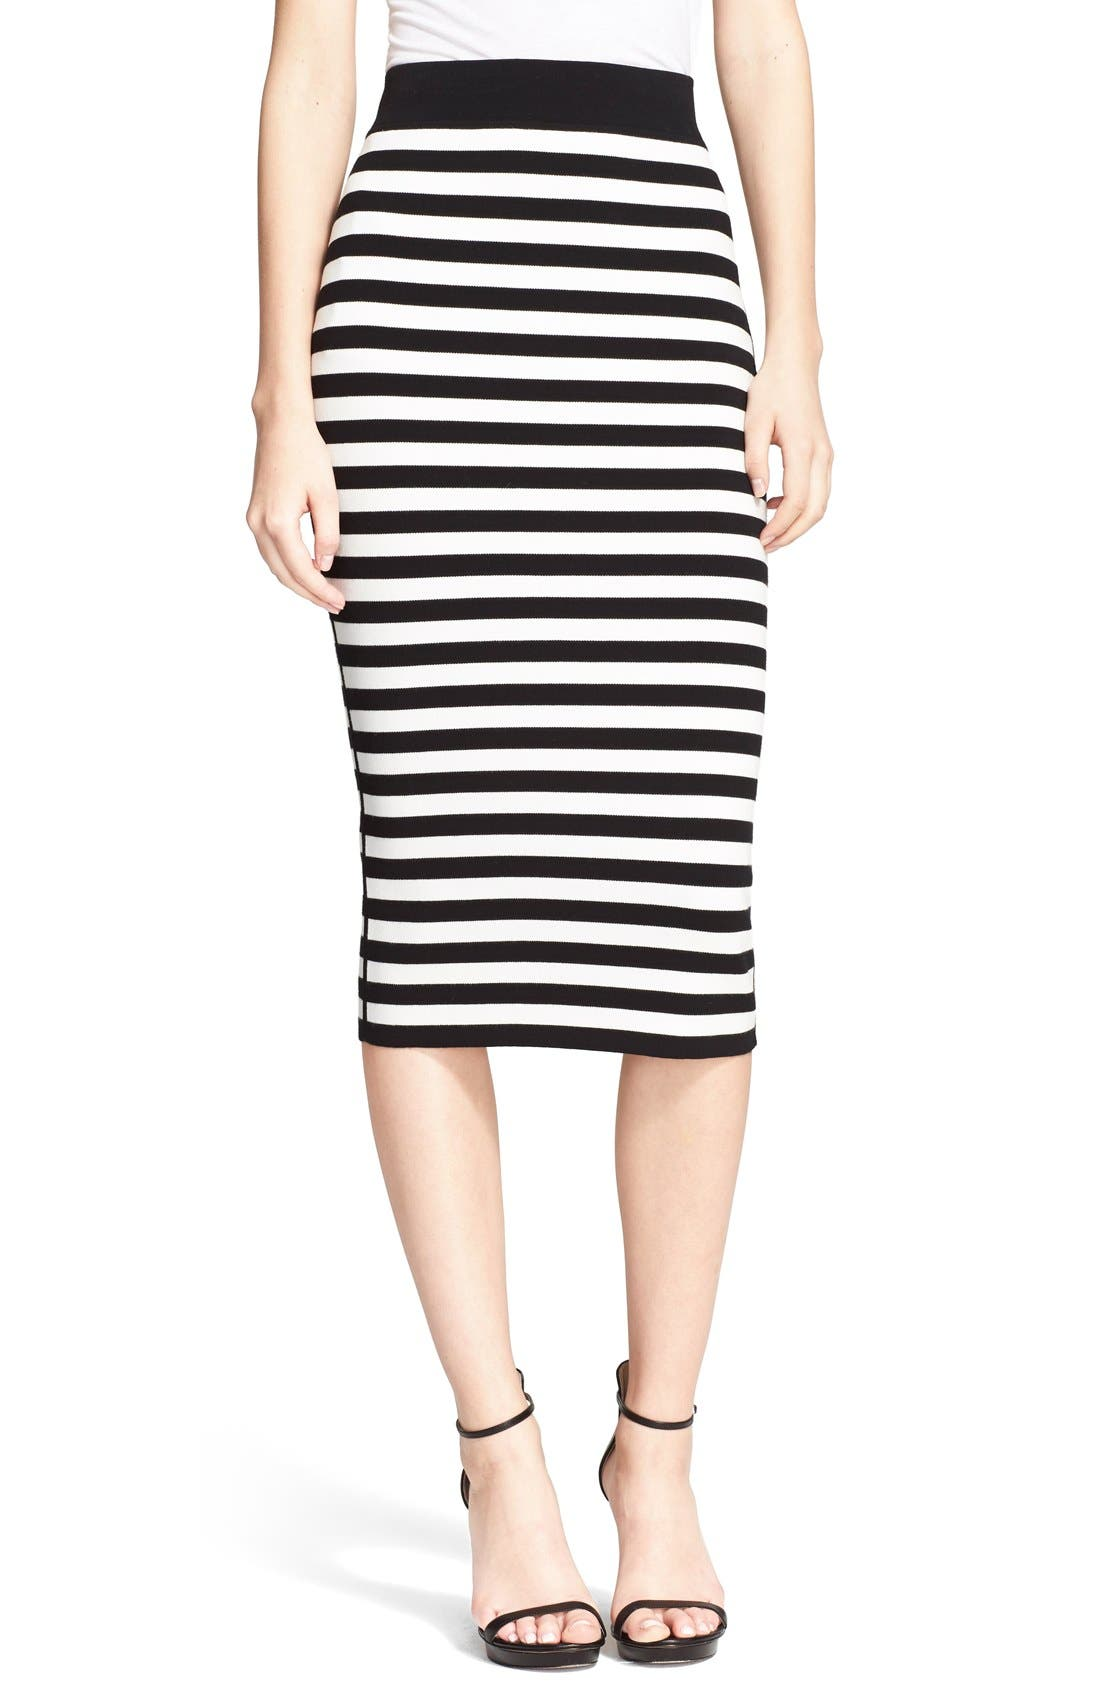 Alternate Image 1 Selected - Michael Kors Stripe Knit Pencil Skirt